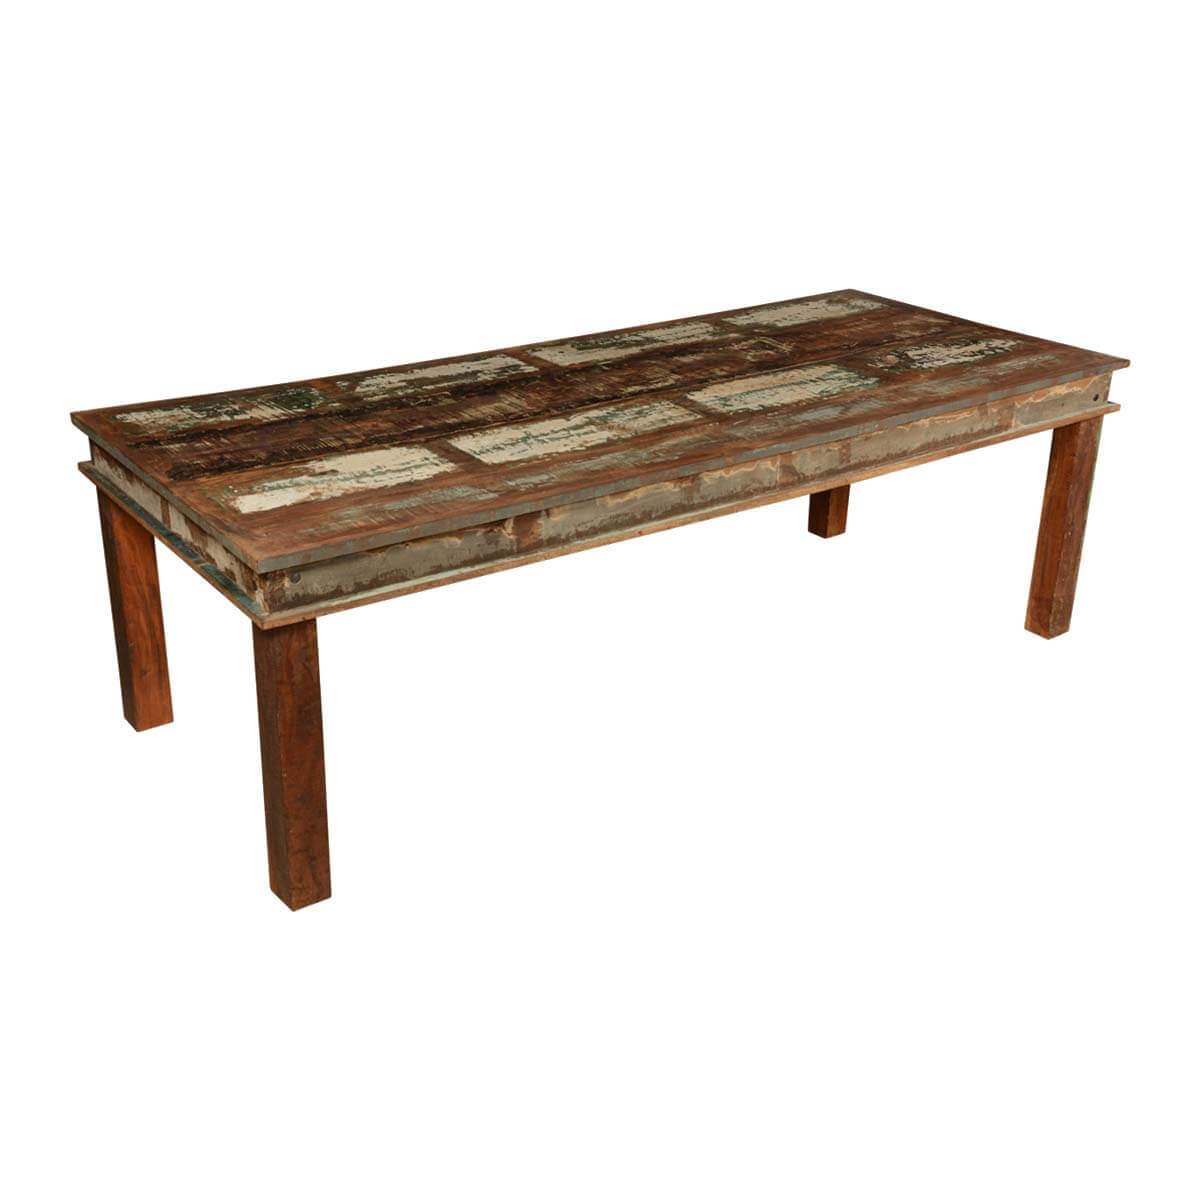 Appalachian distressed reclaimed wood 96 rustic dining table Rustic wood dining table